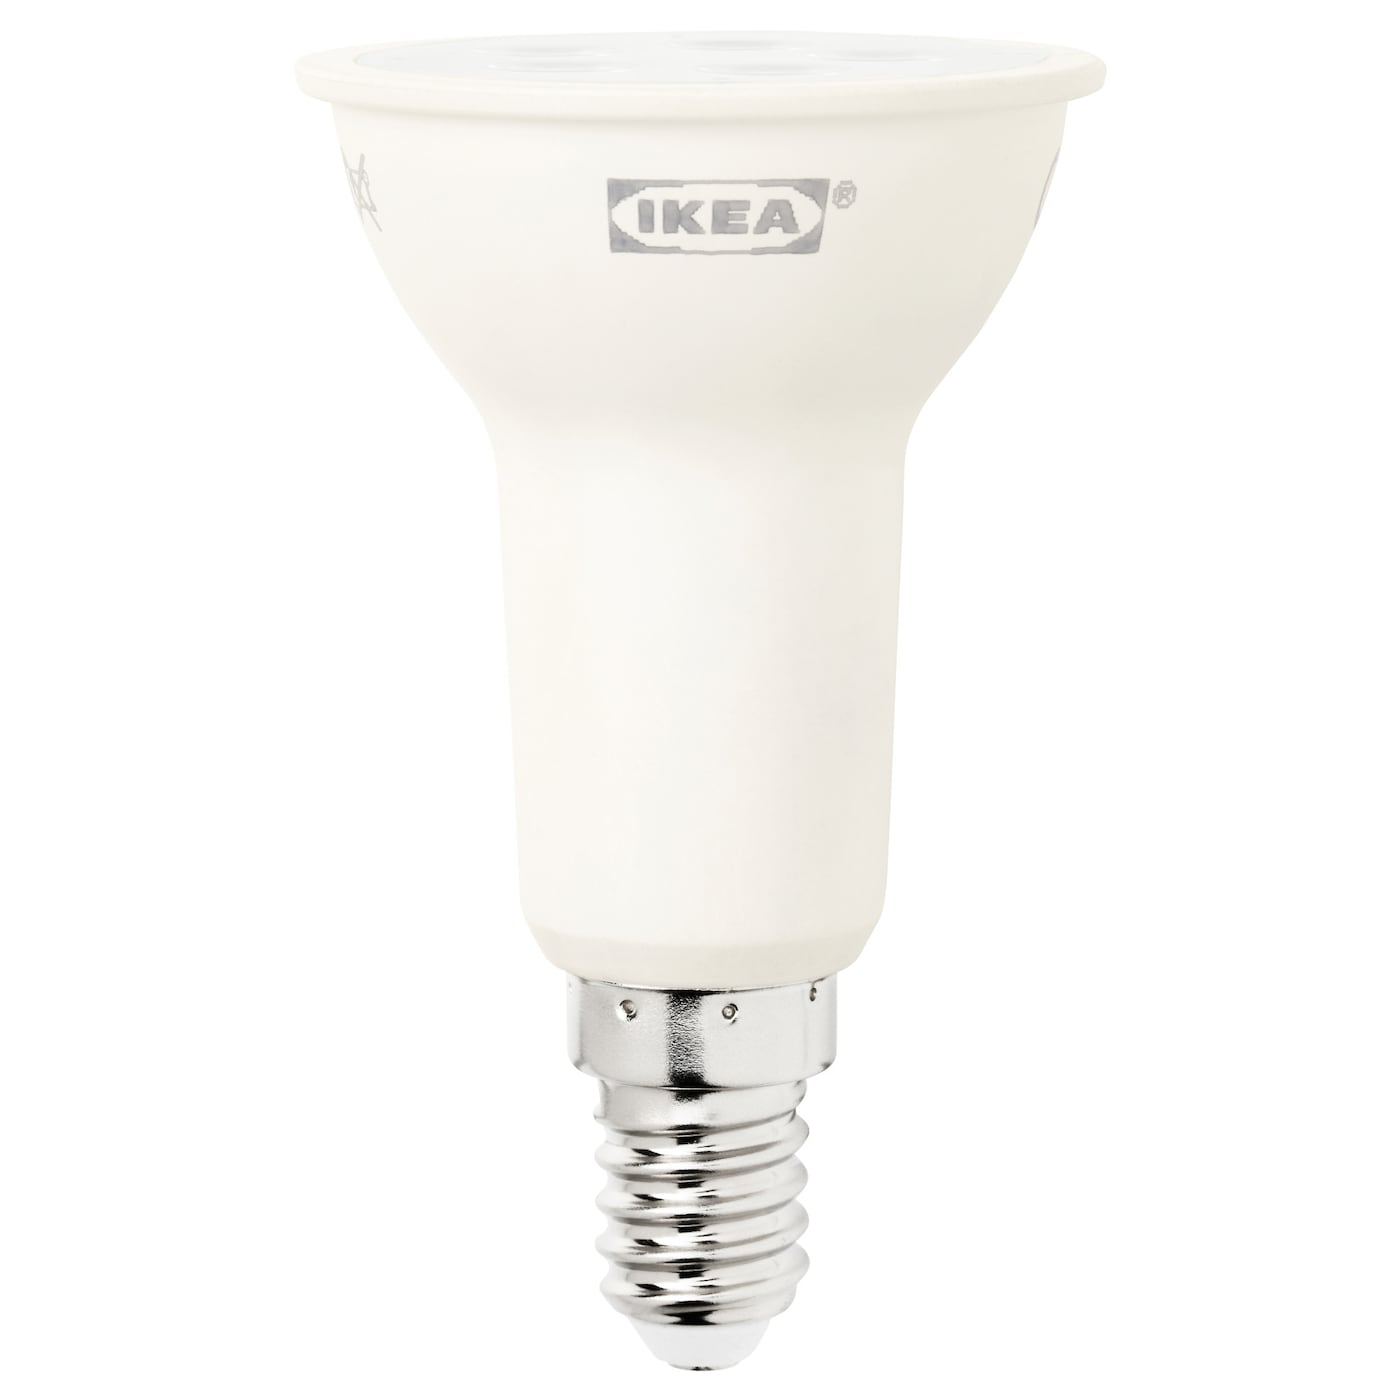 ledare led bulb e14 reflector r50 400lm dimmable ikea. Black Bedroom Furniture Sets. Home Design Ideas